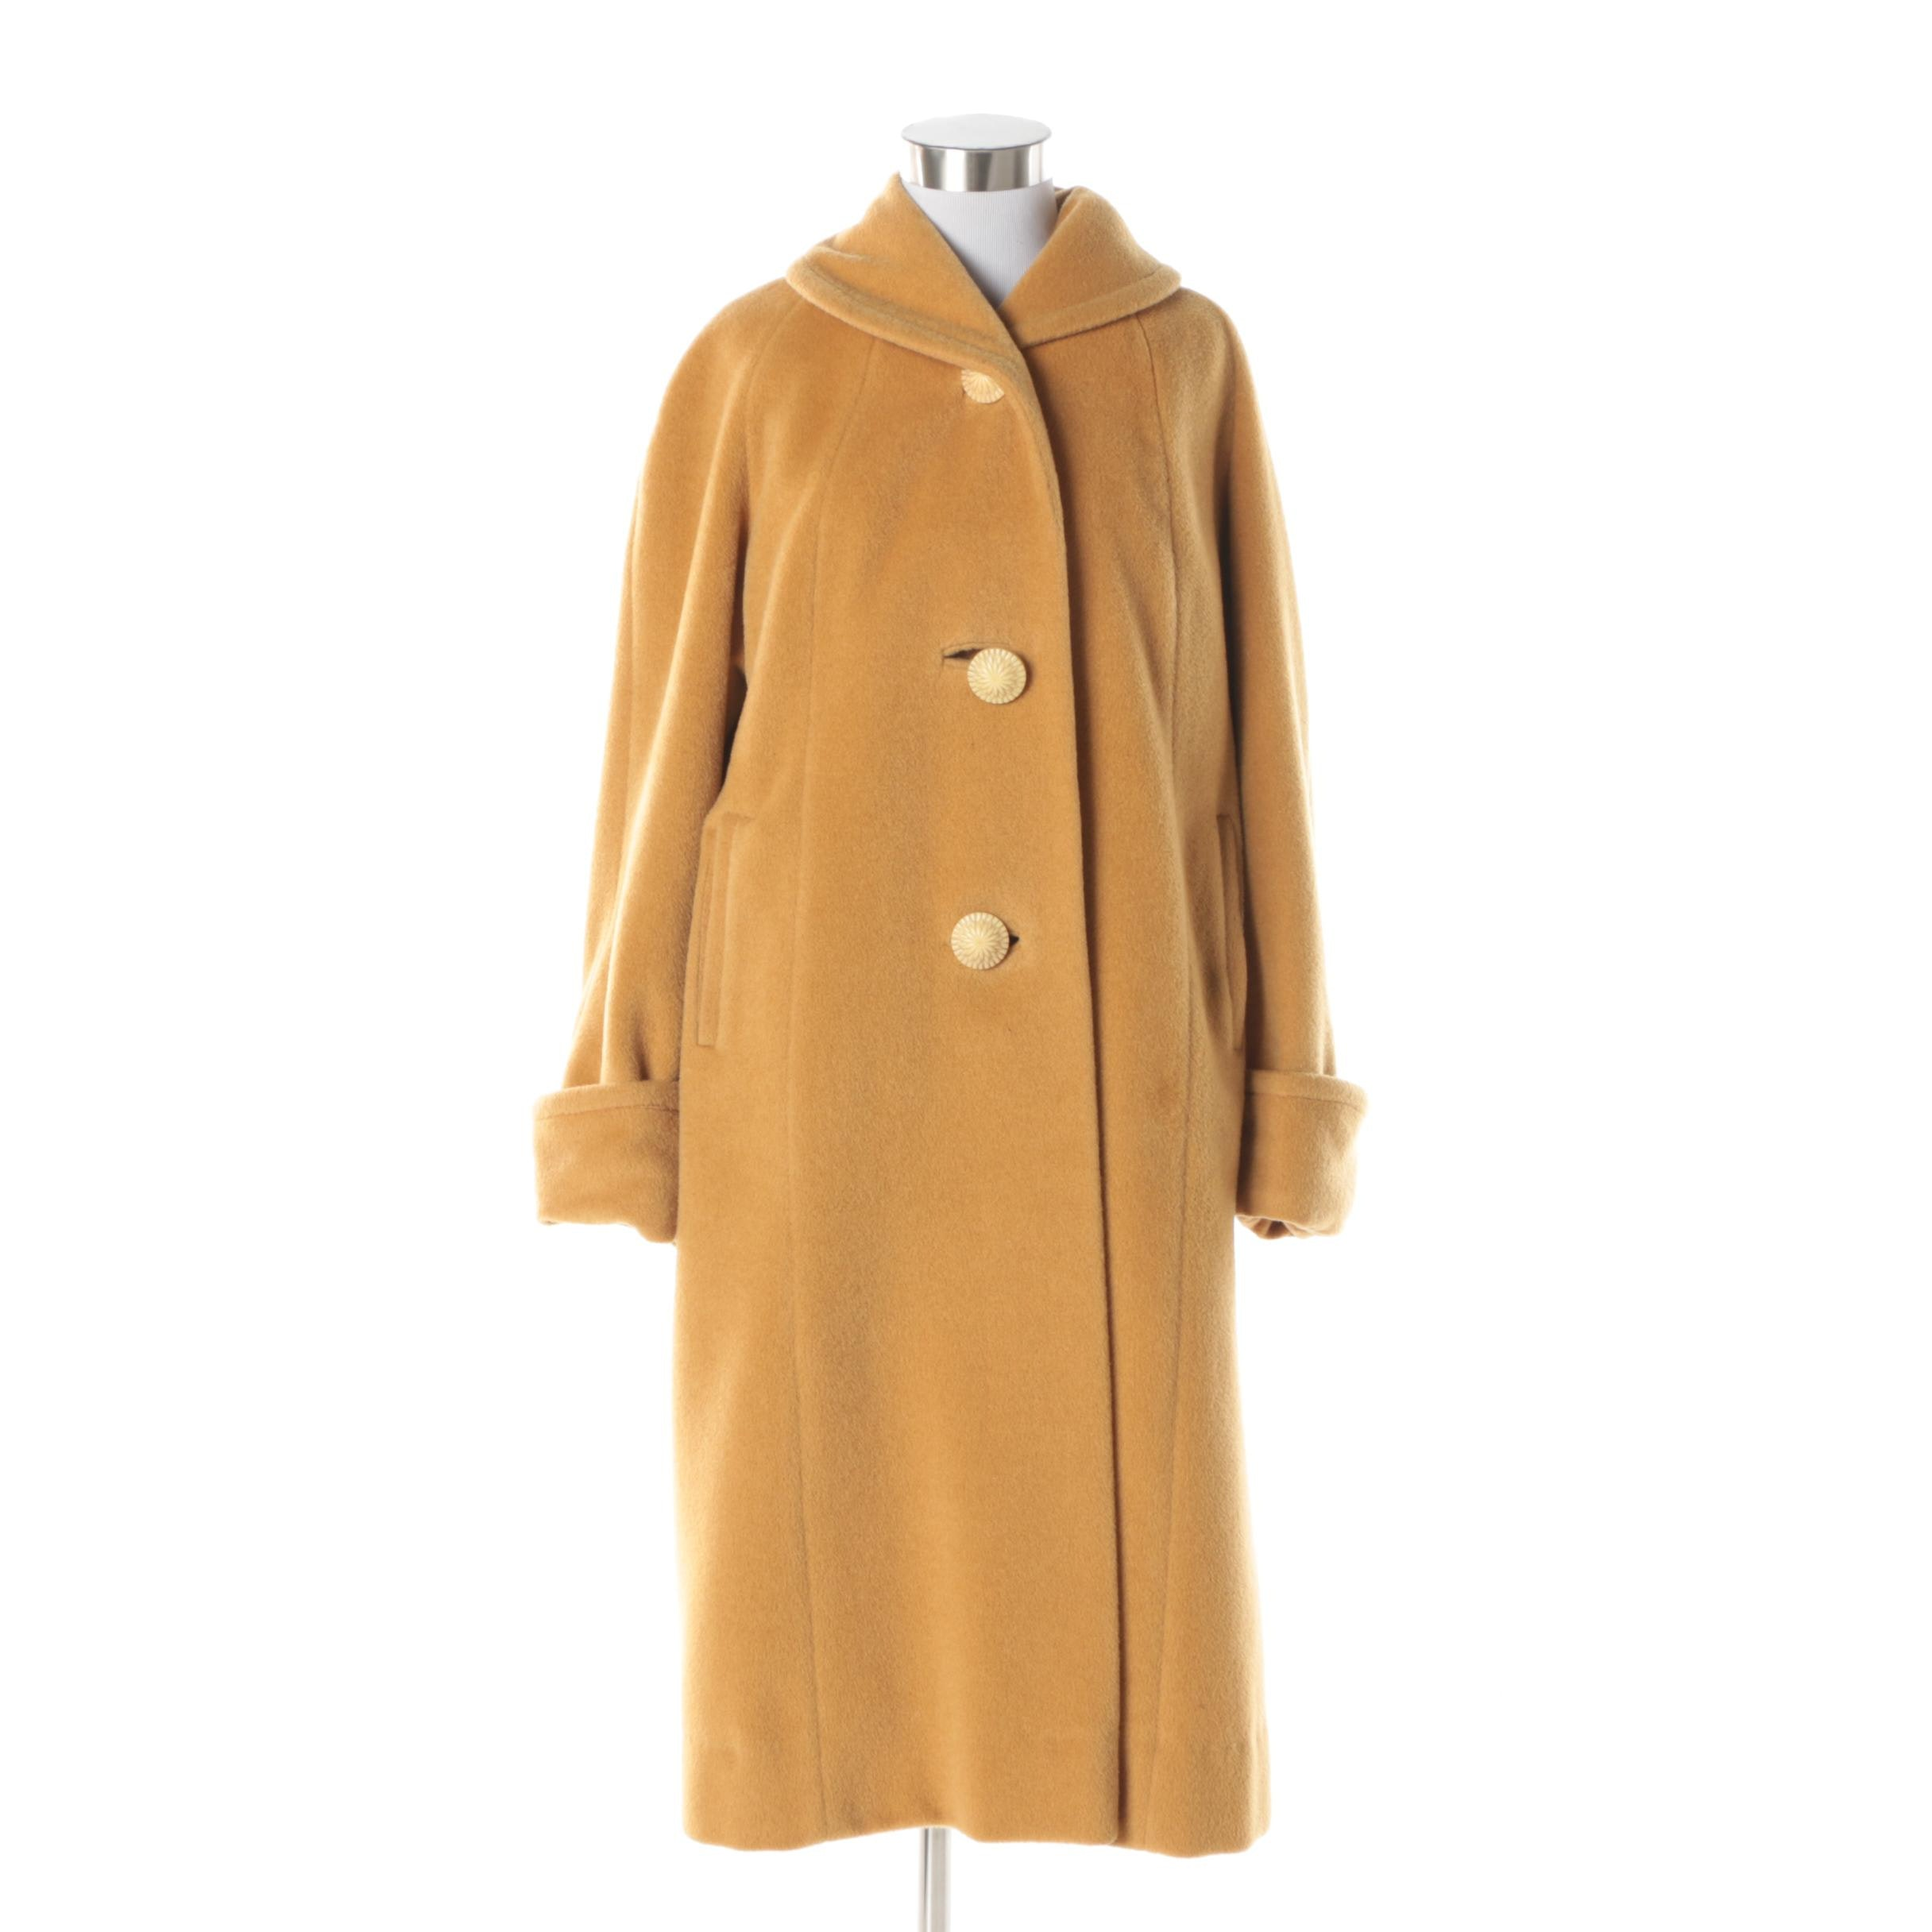 Women's Circa 1950s Vintage Worumbo Mark J. Mustard Yellow Wool Coat